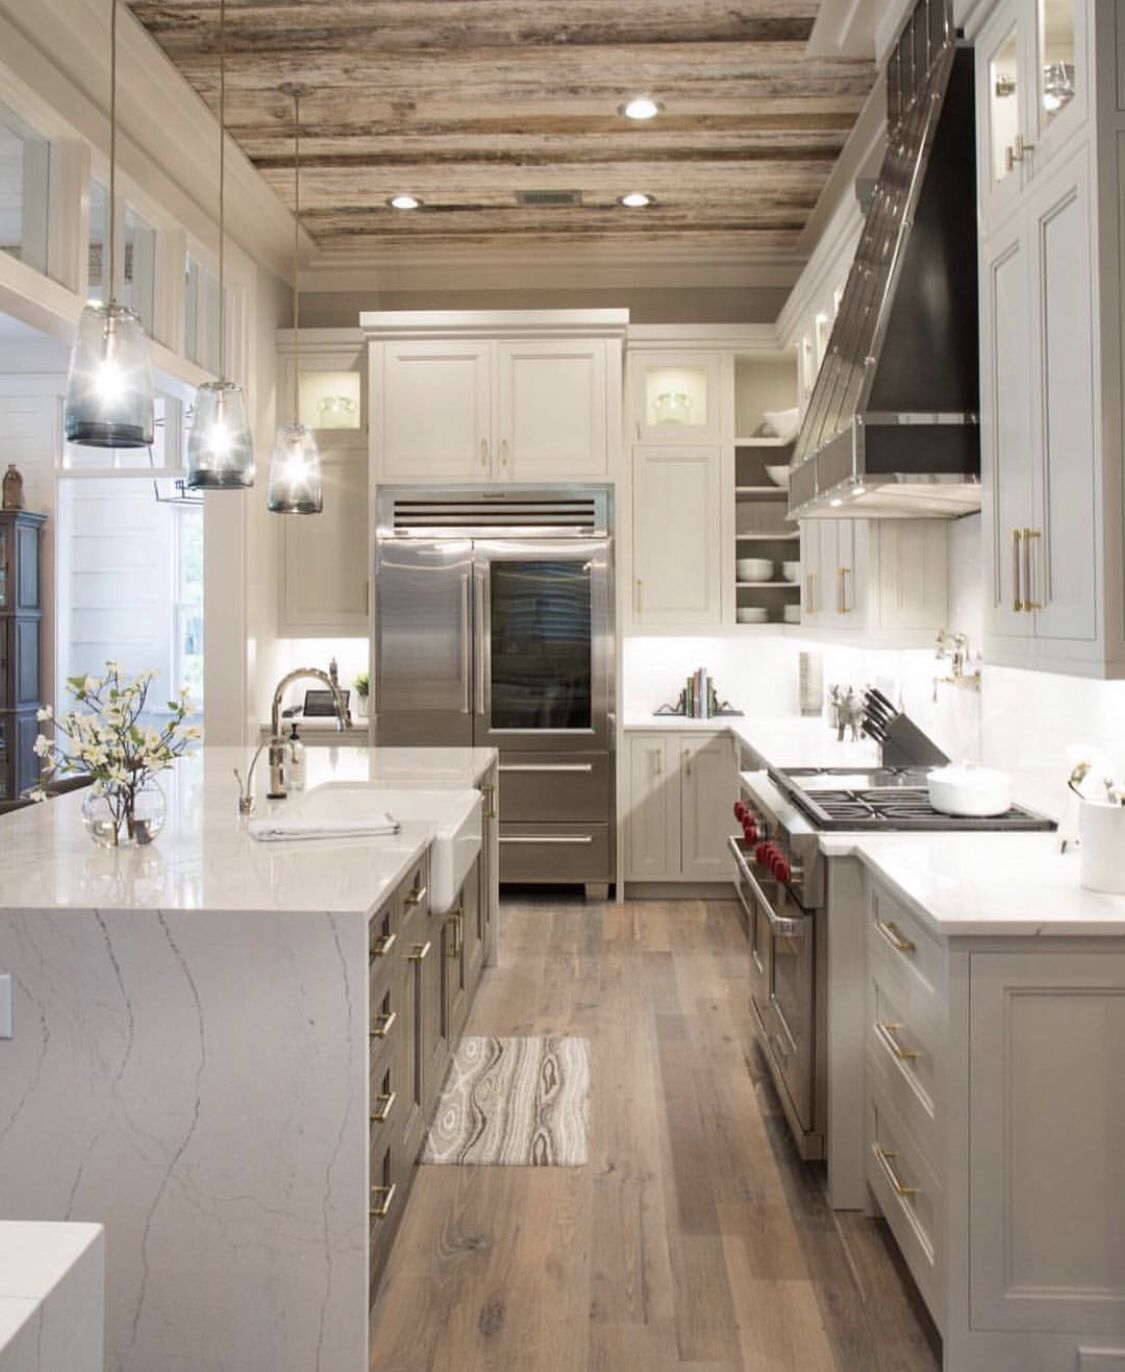 Pin By Sepid 777 On Design Int Luxury Kitchens Home Kitchen Layout